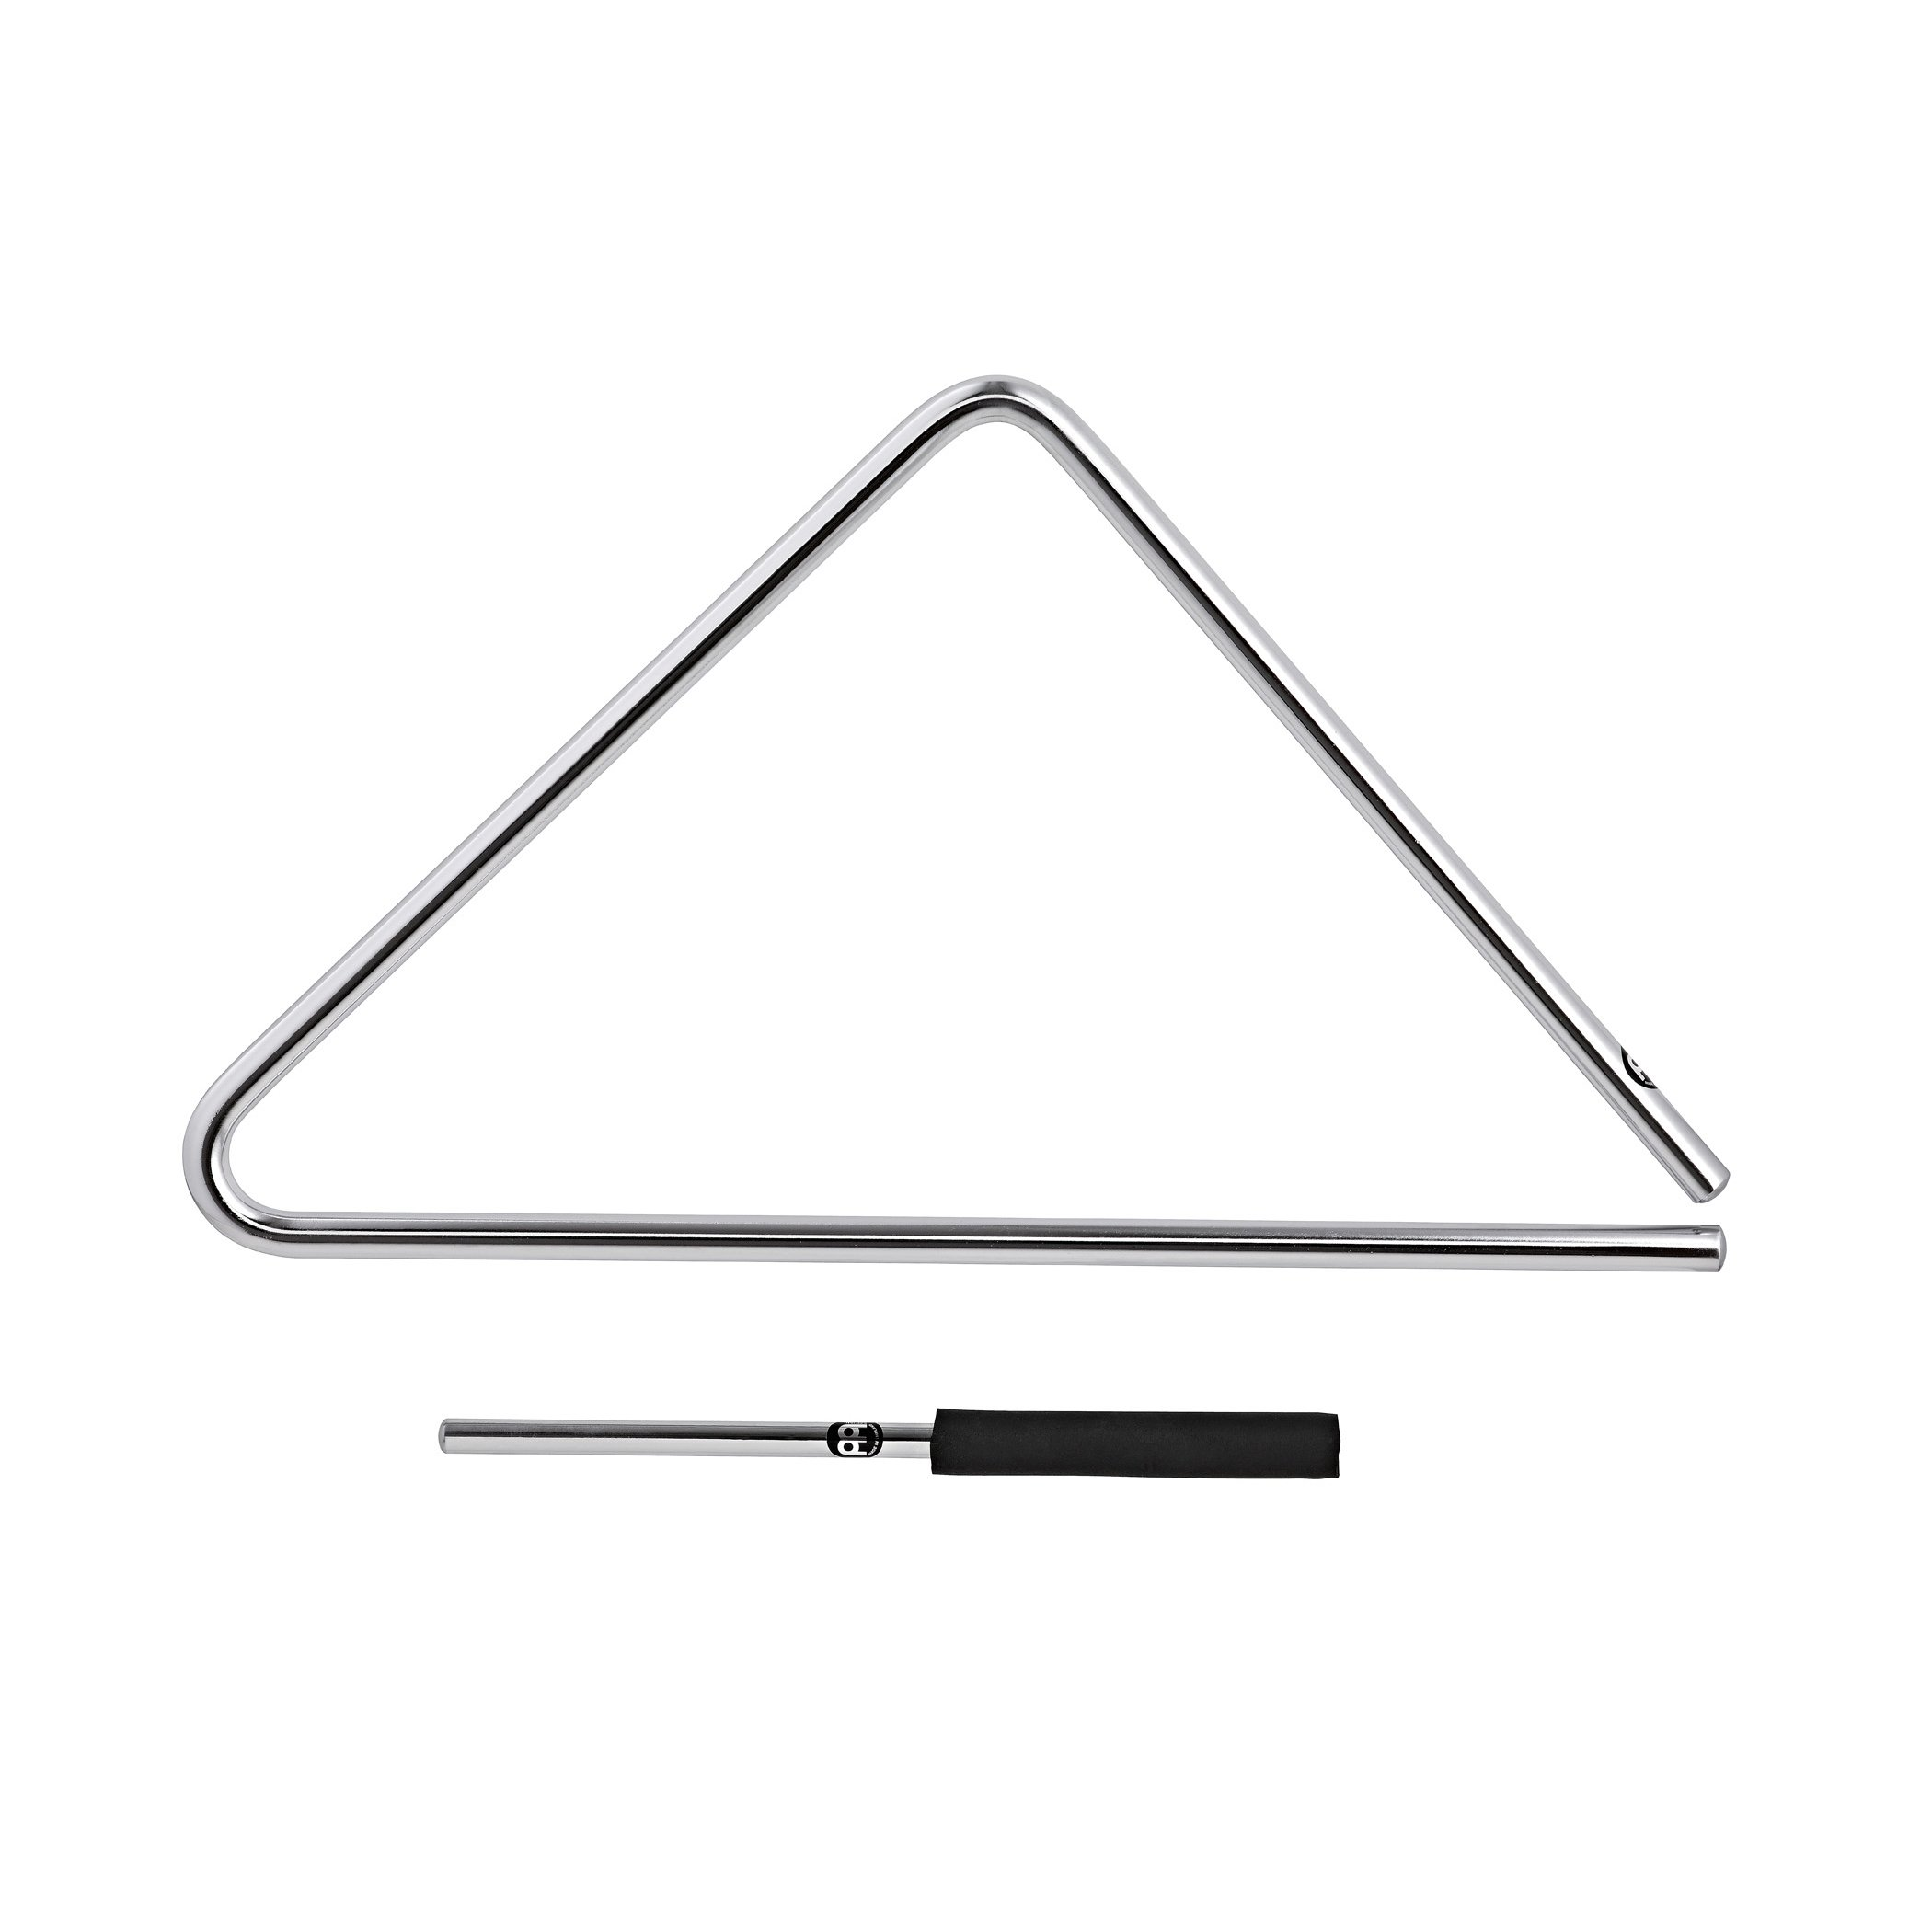 Meinl Percussion STRI40 15 3/4-Inch Steel Samba Triangle, Including Extra Large Beater